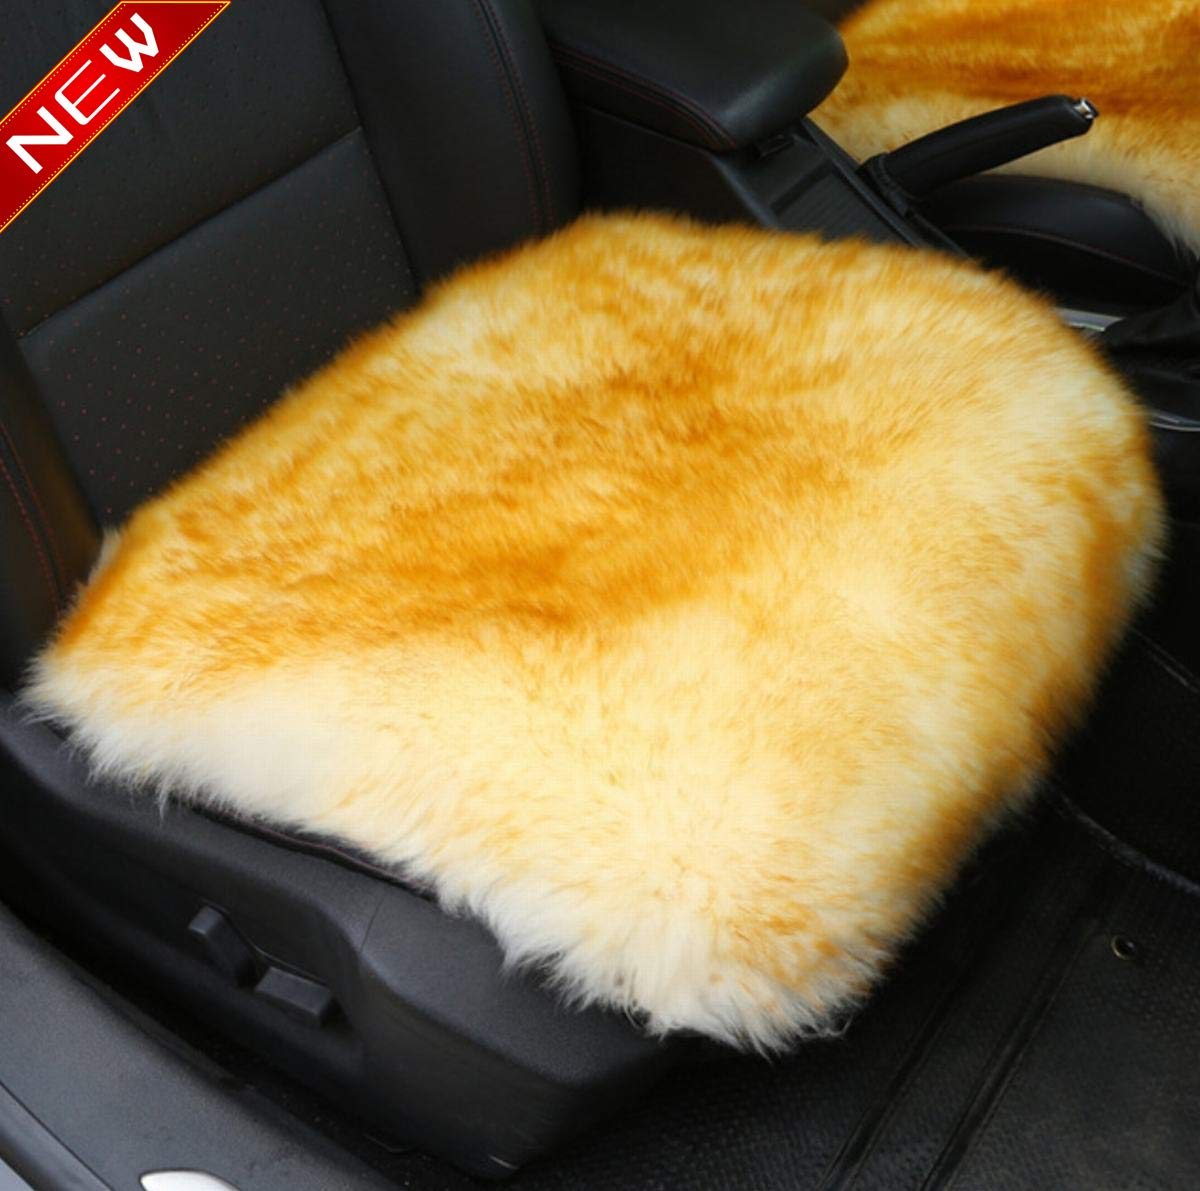 or Van Front Purple SUV Truck Sisha Sheepskin Seat Cushion Cover Winter Warm Natural Wool Car Seat Covers Universal Fit for Most Car